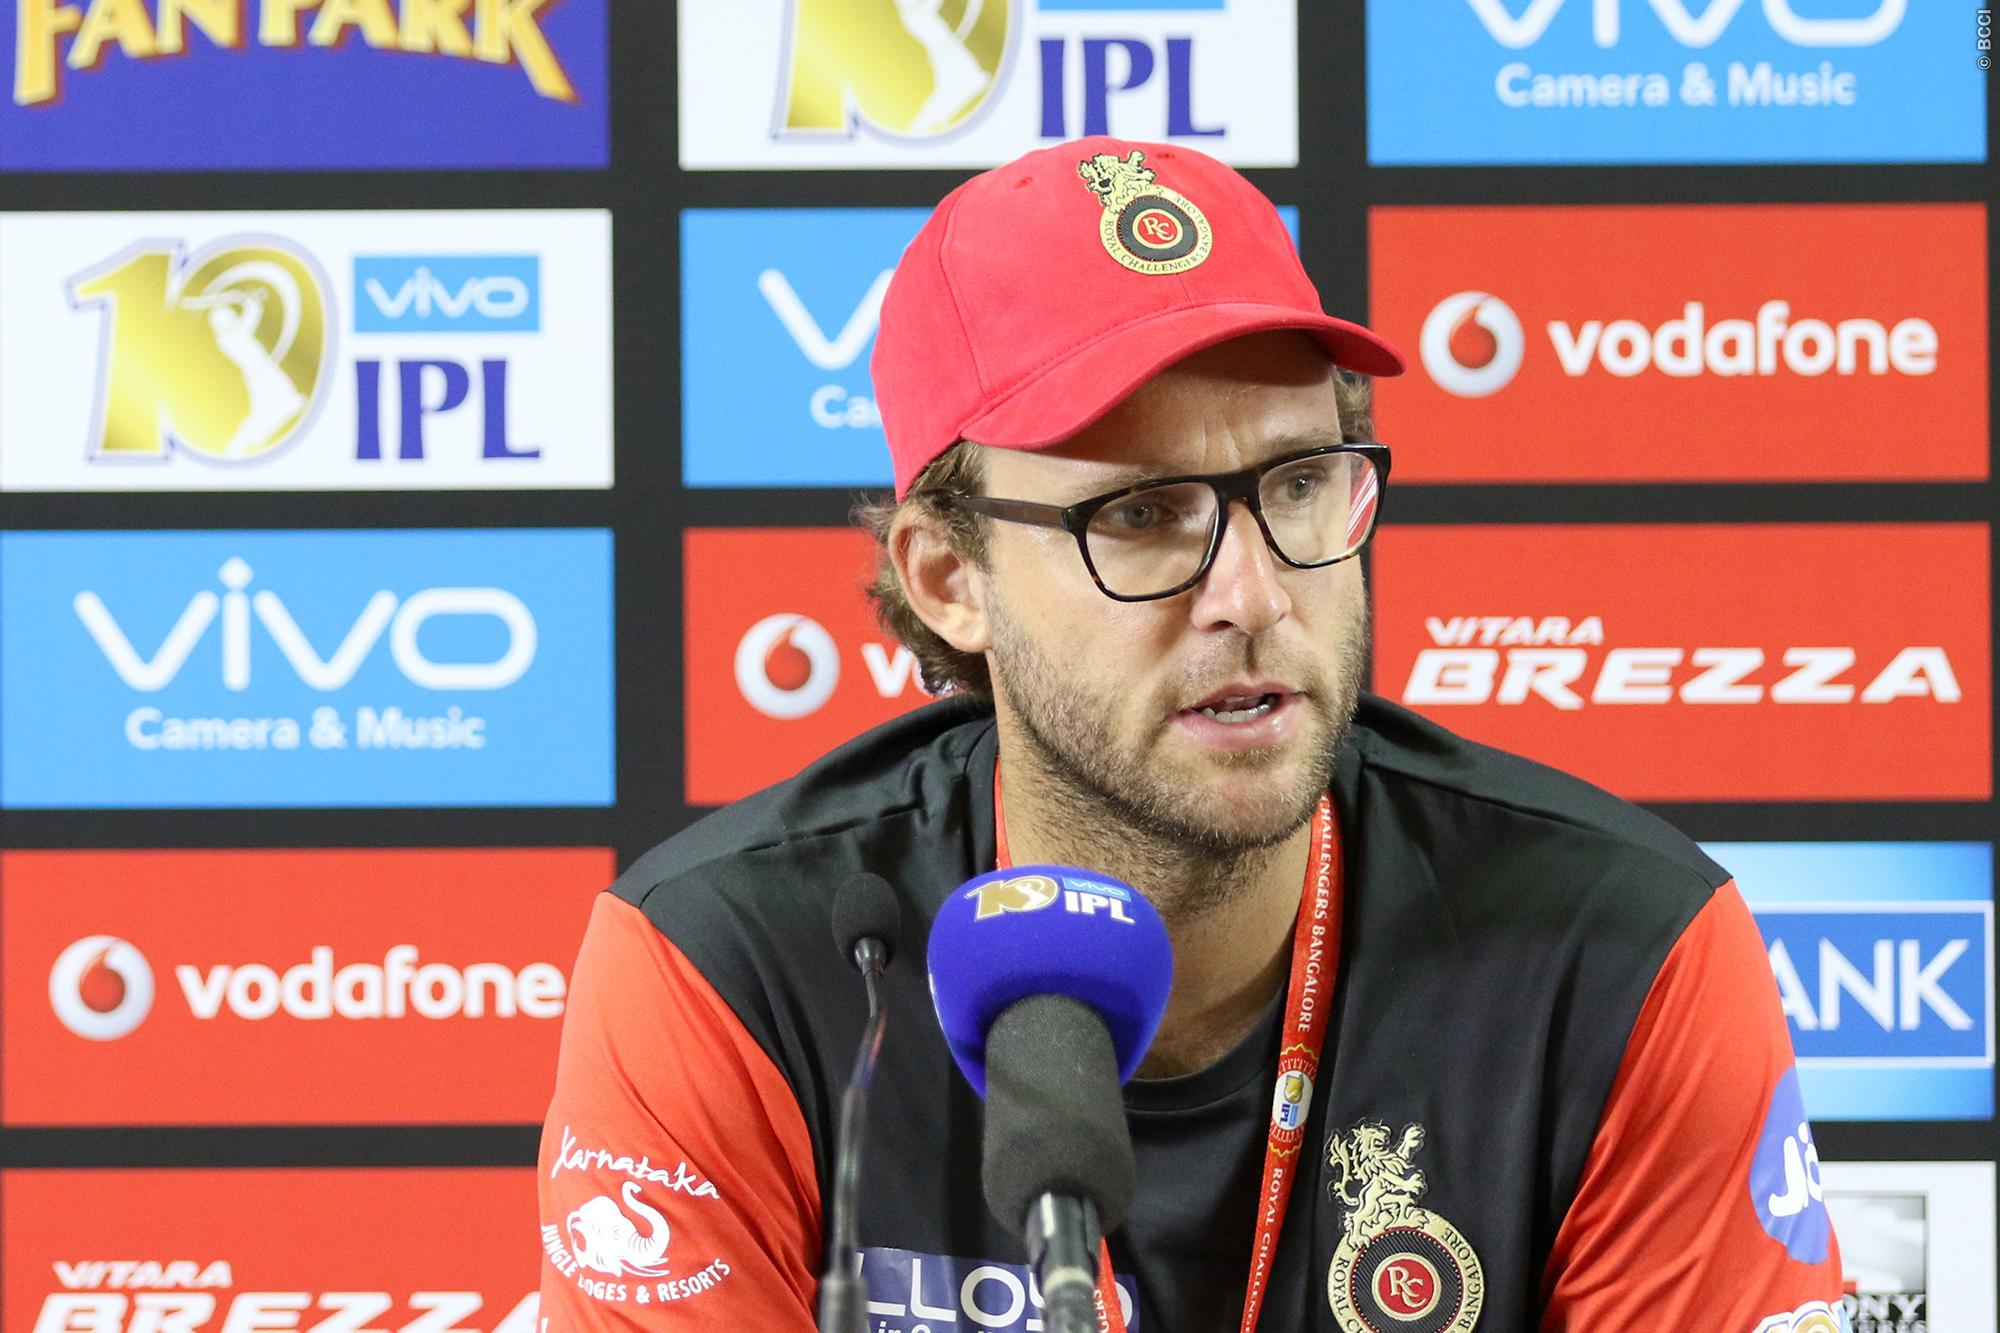 Ipl 10 Vettori Defends Dropping Gayle In Match Against Rising Pune ...